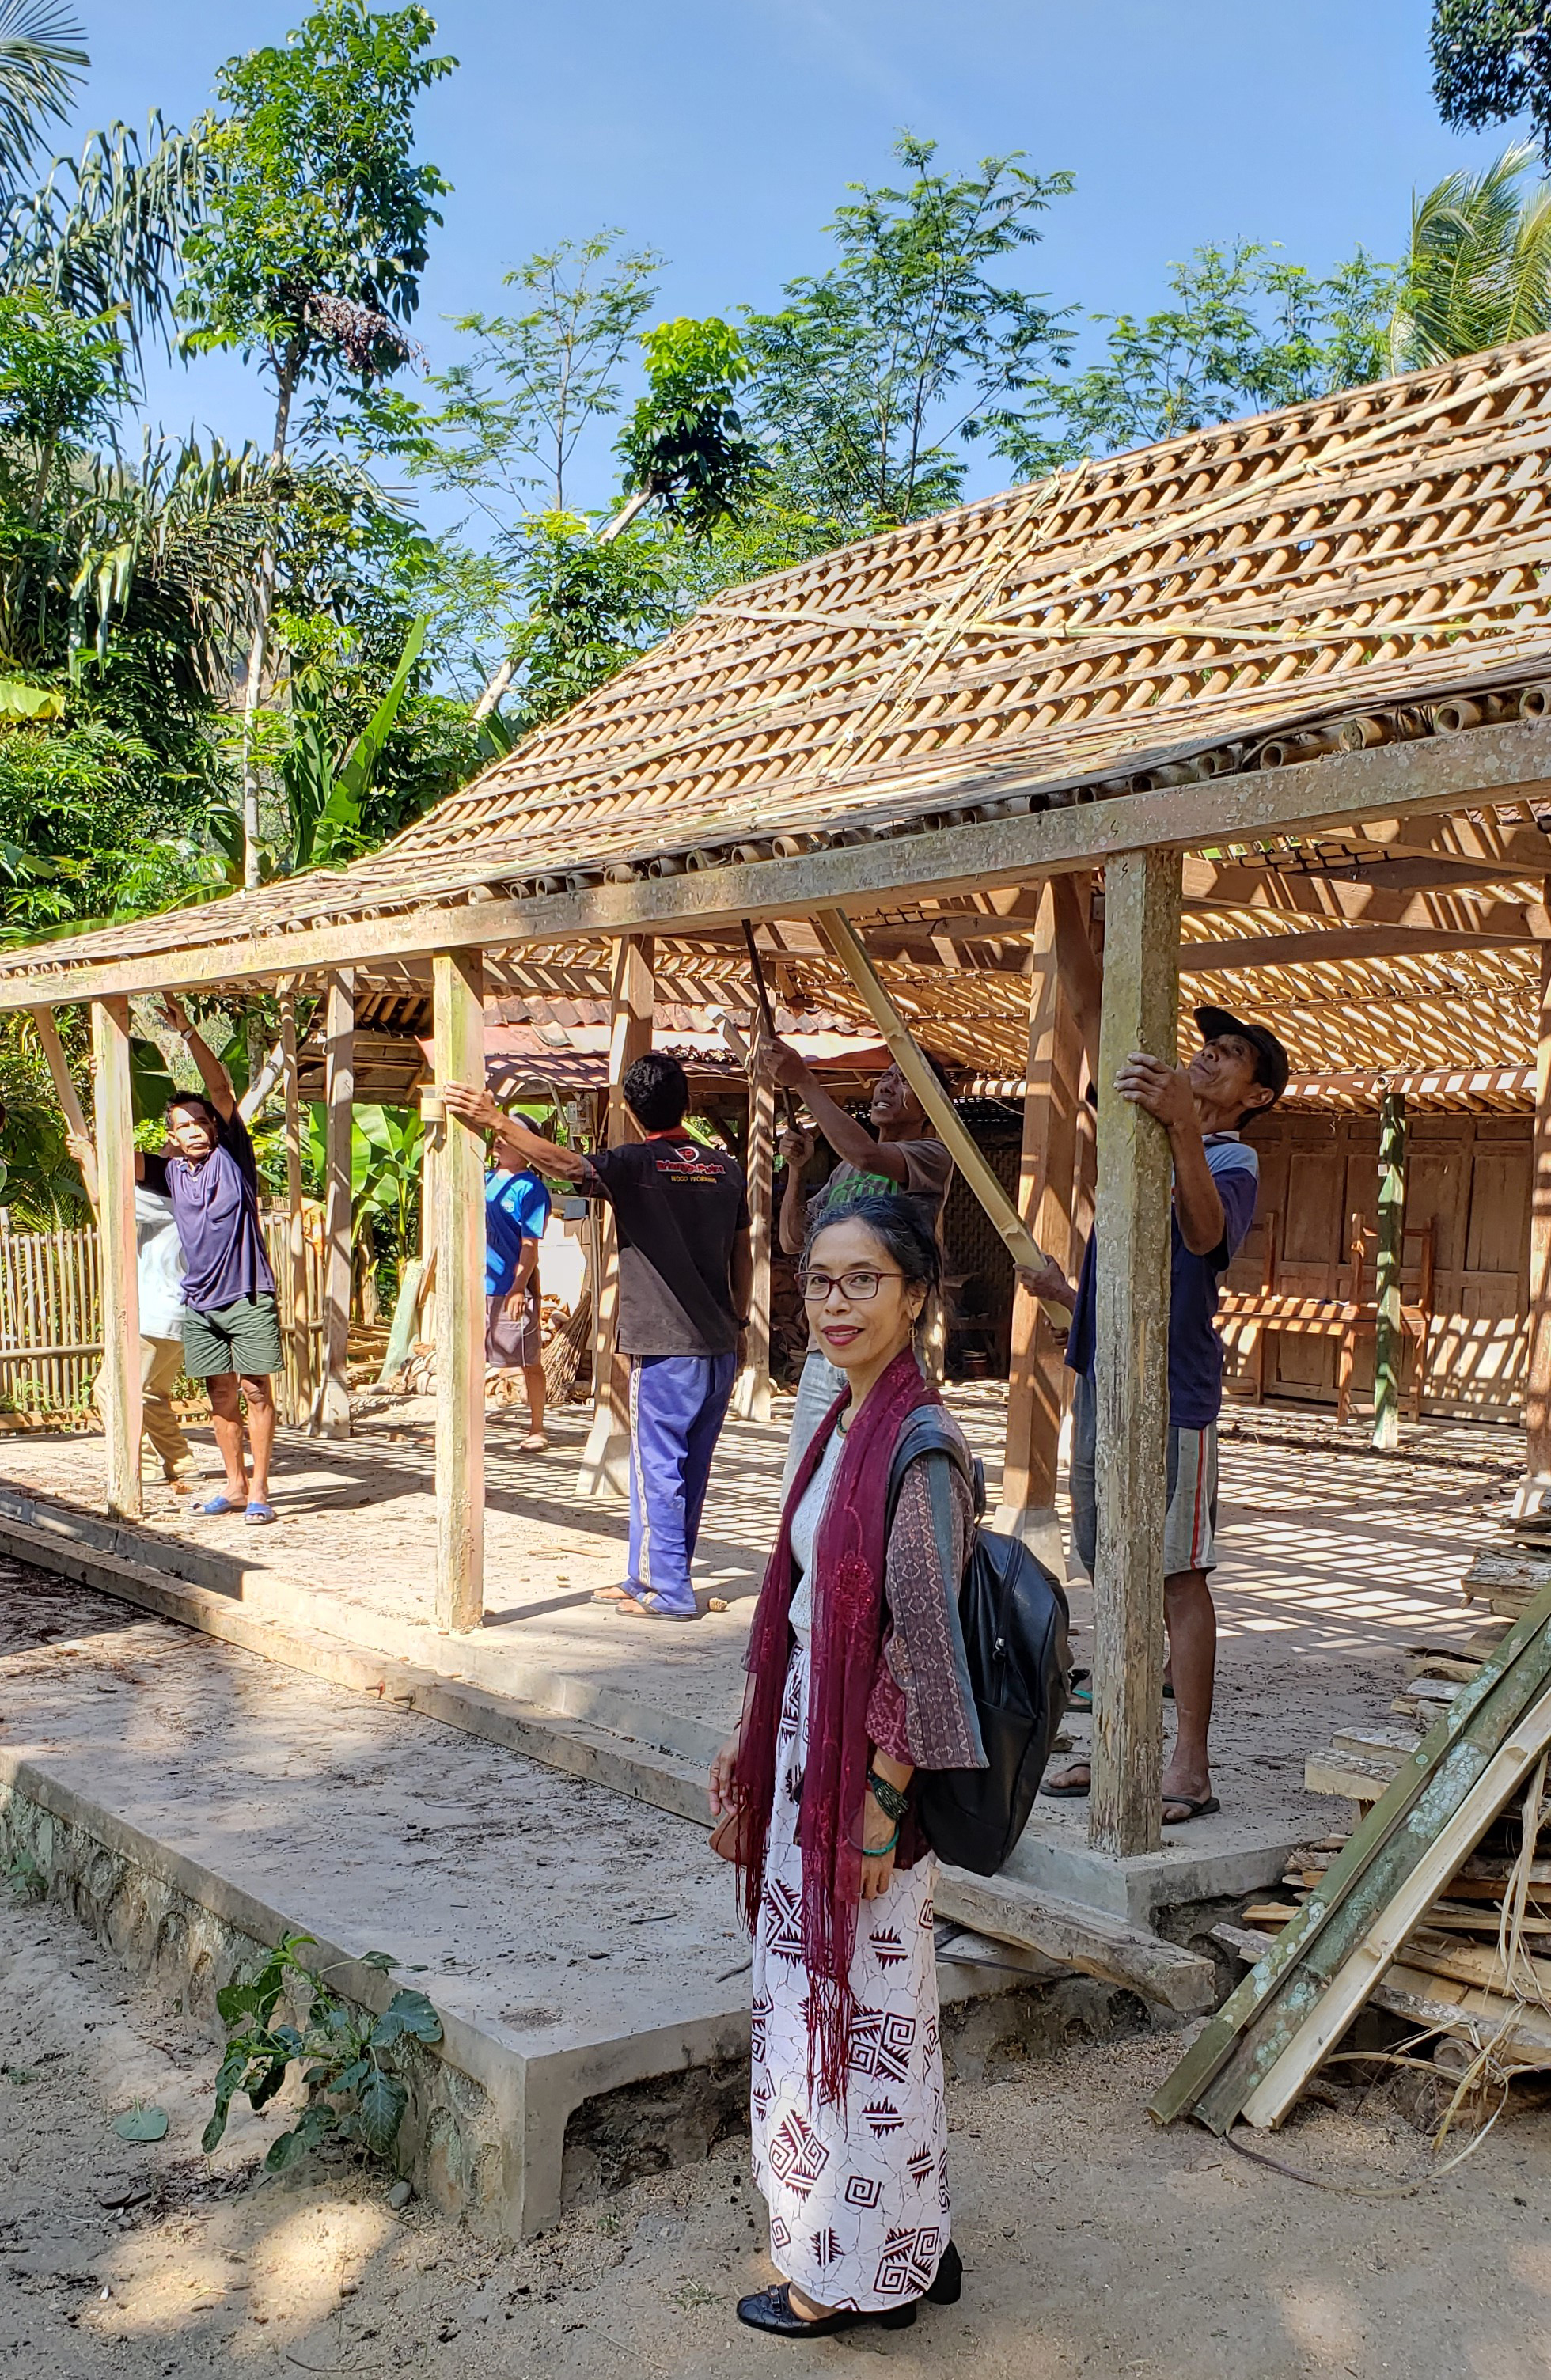 I joined the group of workers to move this traditional house to its new location, where it is now a house of production for making coir.